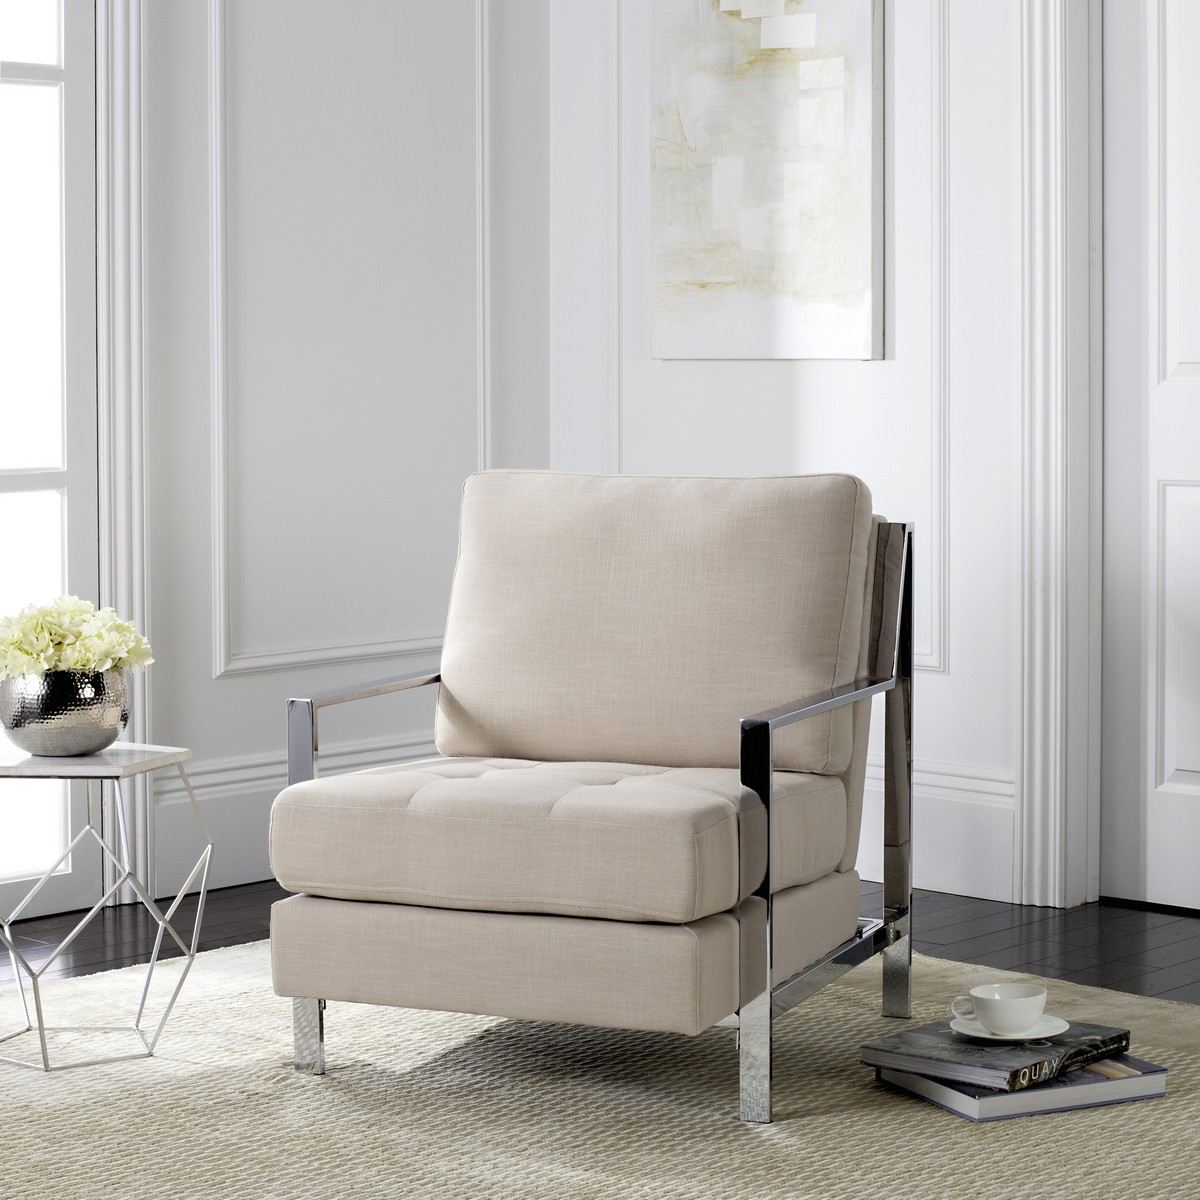 WALDEN MODERN TUFTED LINEN CHROME ACCENT CHAIR FOX6279A ACCENT CHAIRS & FOX6279A Accent Chairs - Furniture by Safavieh